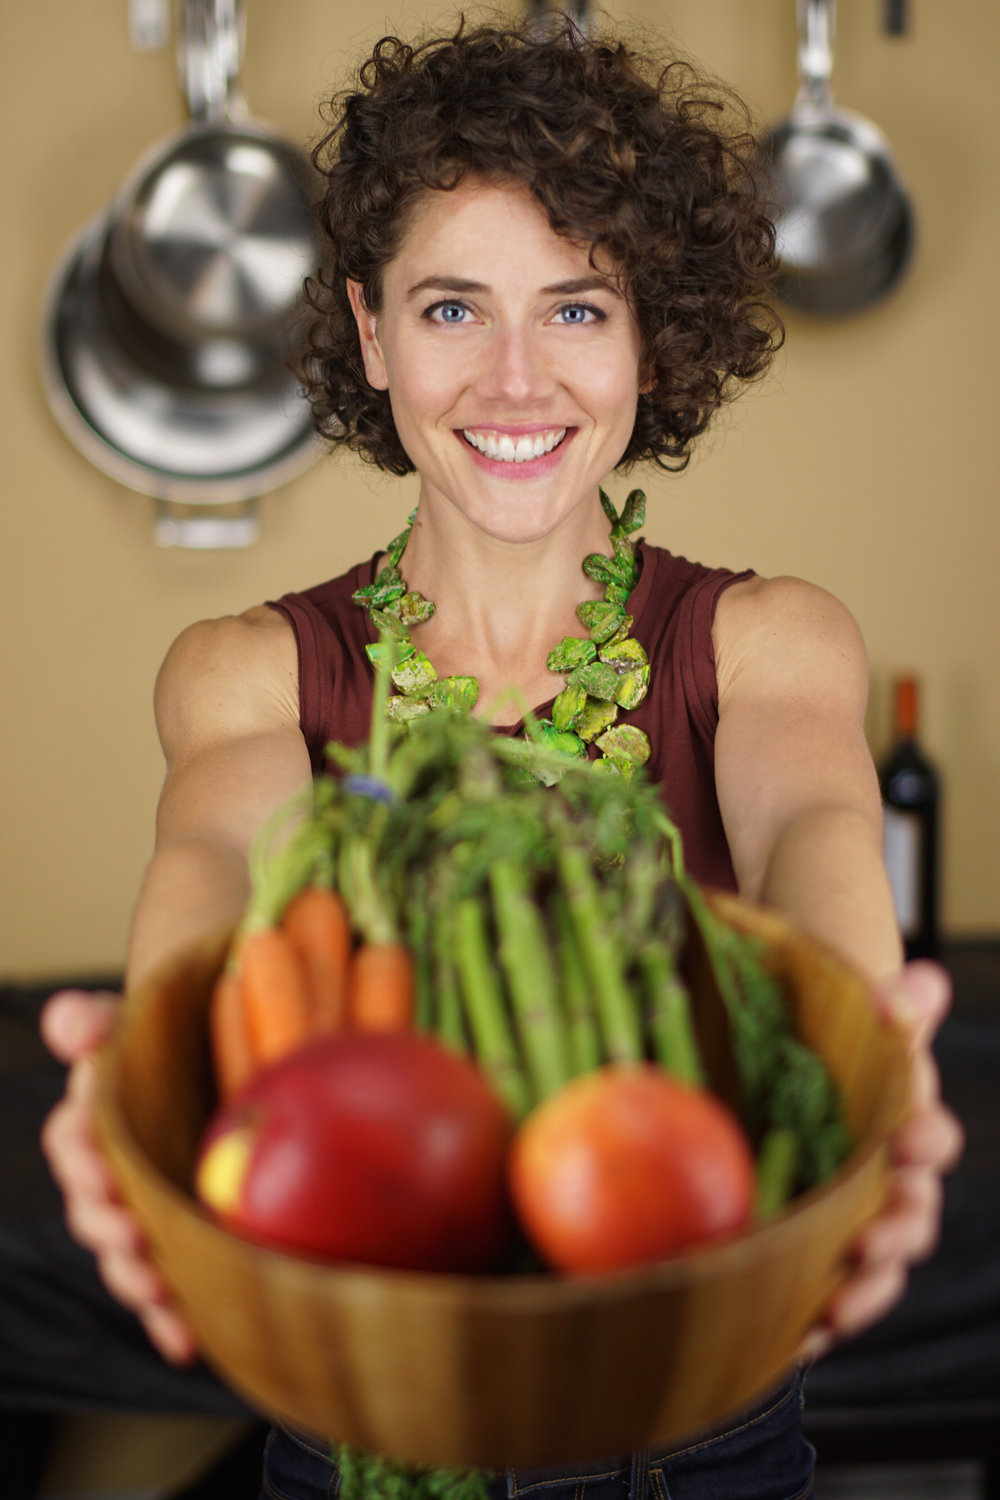 Amanda Schoppe - Amanda is a Fitness Trainer, Health Coach, former Radio City Rockette and co-founder of Market.Kitchen.Table.  She has a true love of movement, connecting with people and wants to help reconnect people to their bodies through the food they eat. Willy and Amanda launched MKT two years ago with a mission to demystify food and to make healthy eating approachable for Brooklynites and New Yorkers alike. She and Willy are  thrilled to create a well rounded Postnatal Wellness Program for new mamas that aligns MKT's love of healthy food for Every BODY and the necessary support every step of the way. Amanda and her Fiance, Peter spend their time away from MKT relaxing with family, bike riding around Brooklyn and in nature as much as possible.